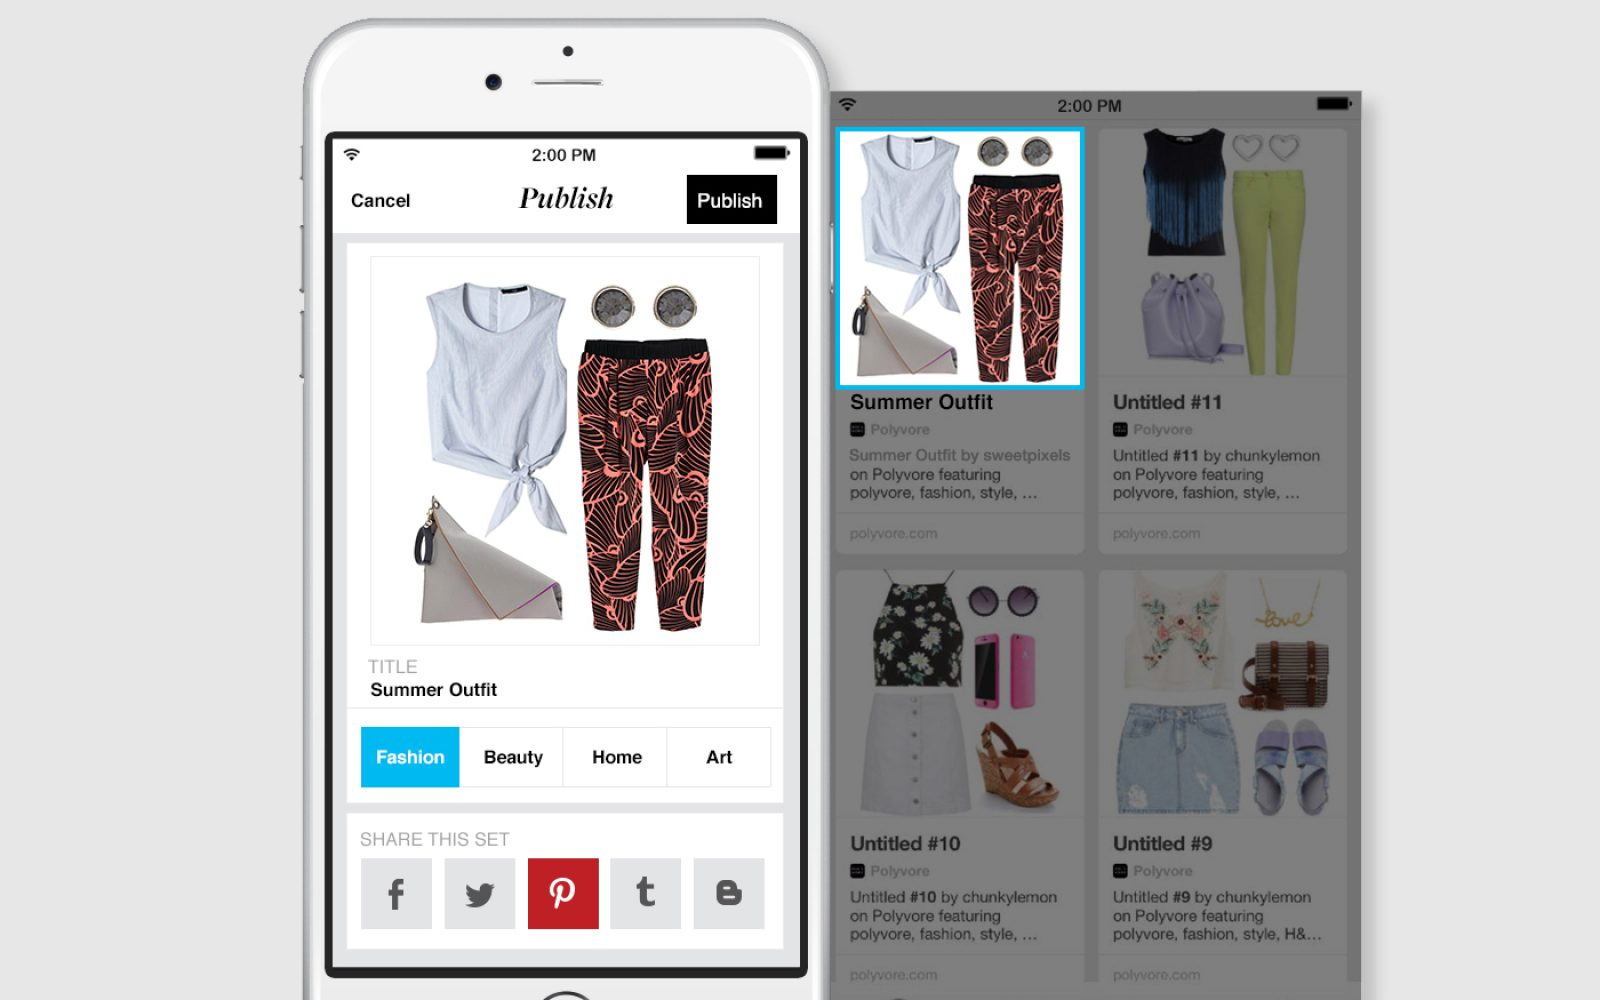 Pinterest announces IFTTT & Polyvore apps as first developer